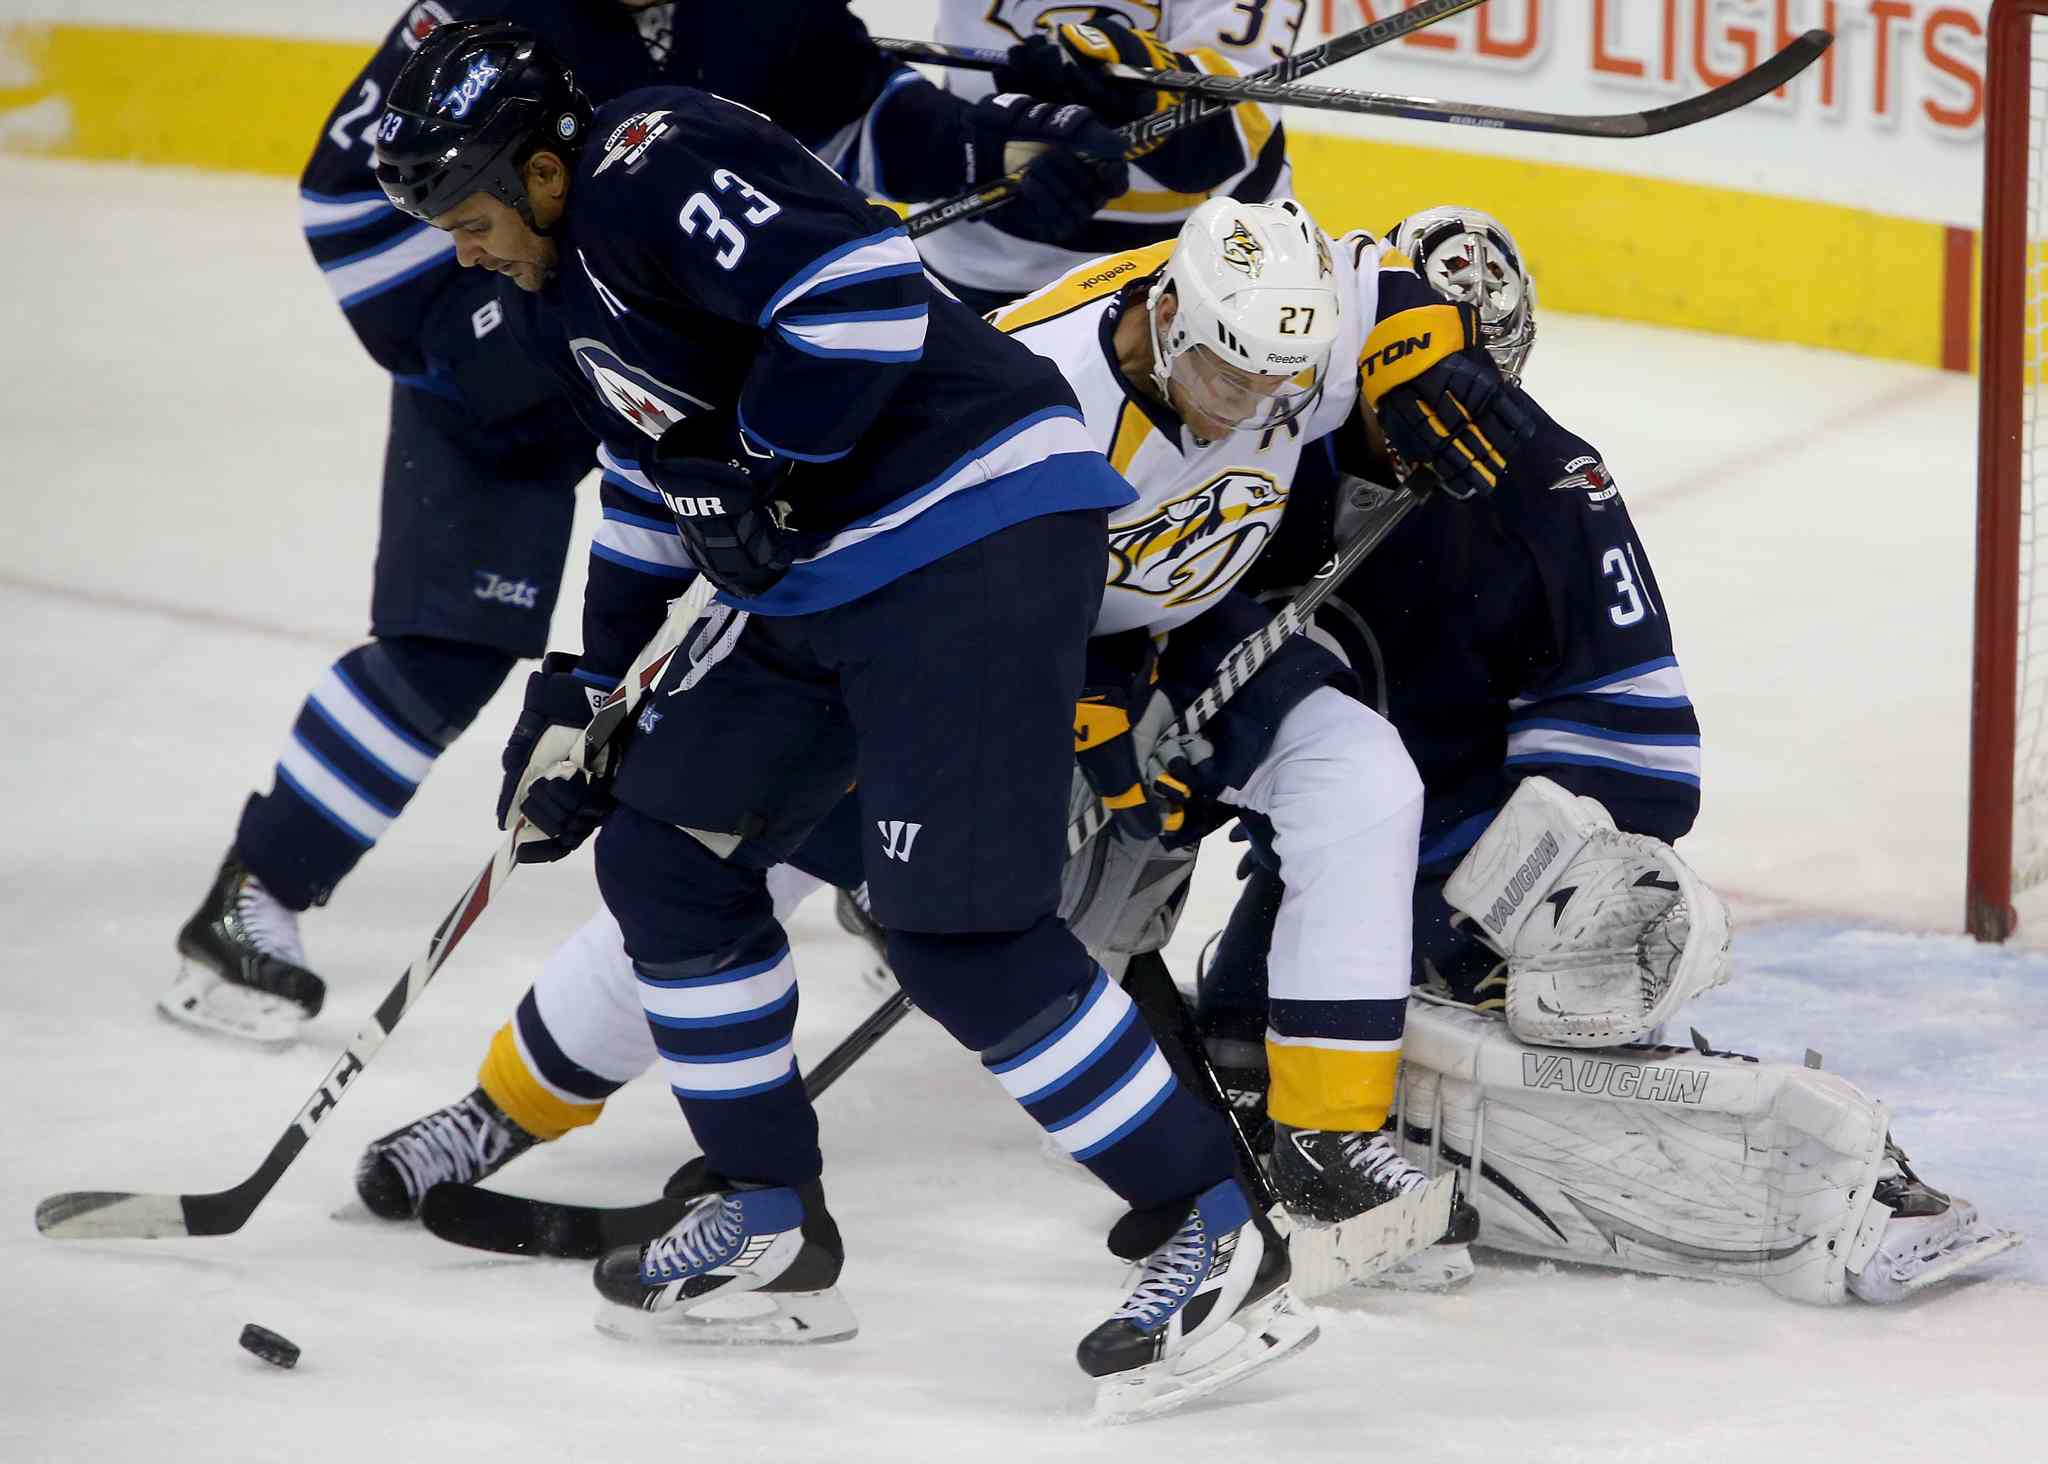 Winnipeg Jets' Dustin Byfuglien blocks a shot as Nashville Predators' Patric Hornqvist (27) screens goaltender Ondrej Pavelec during the first period.